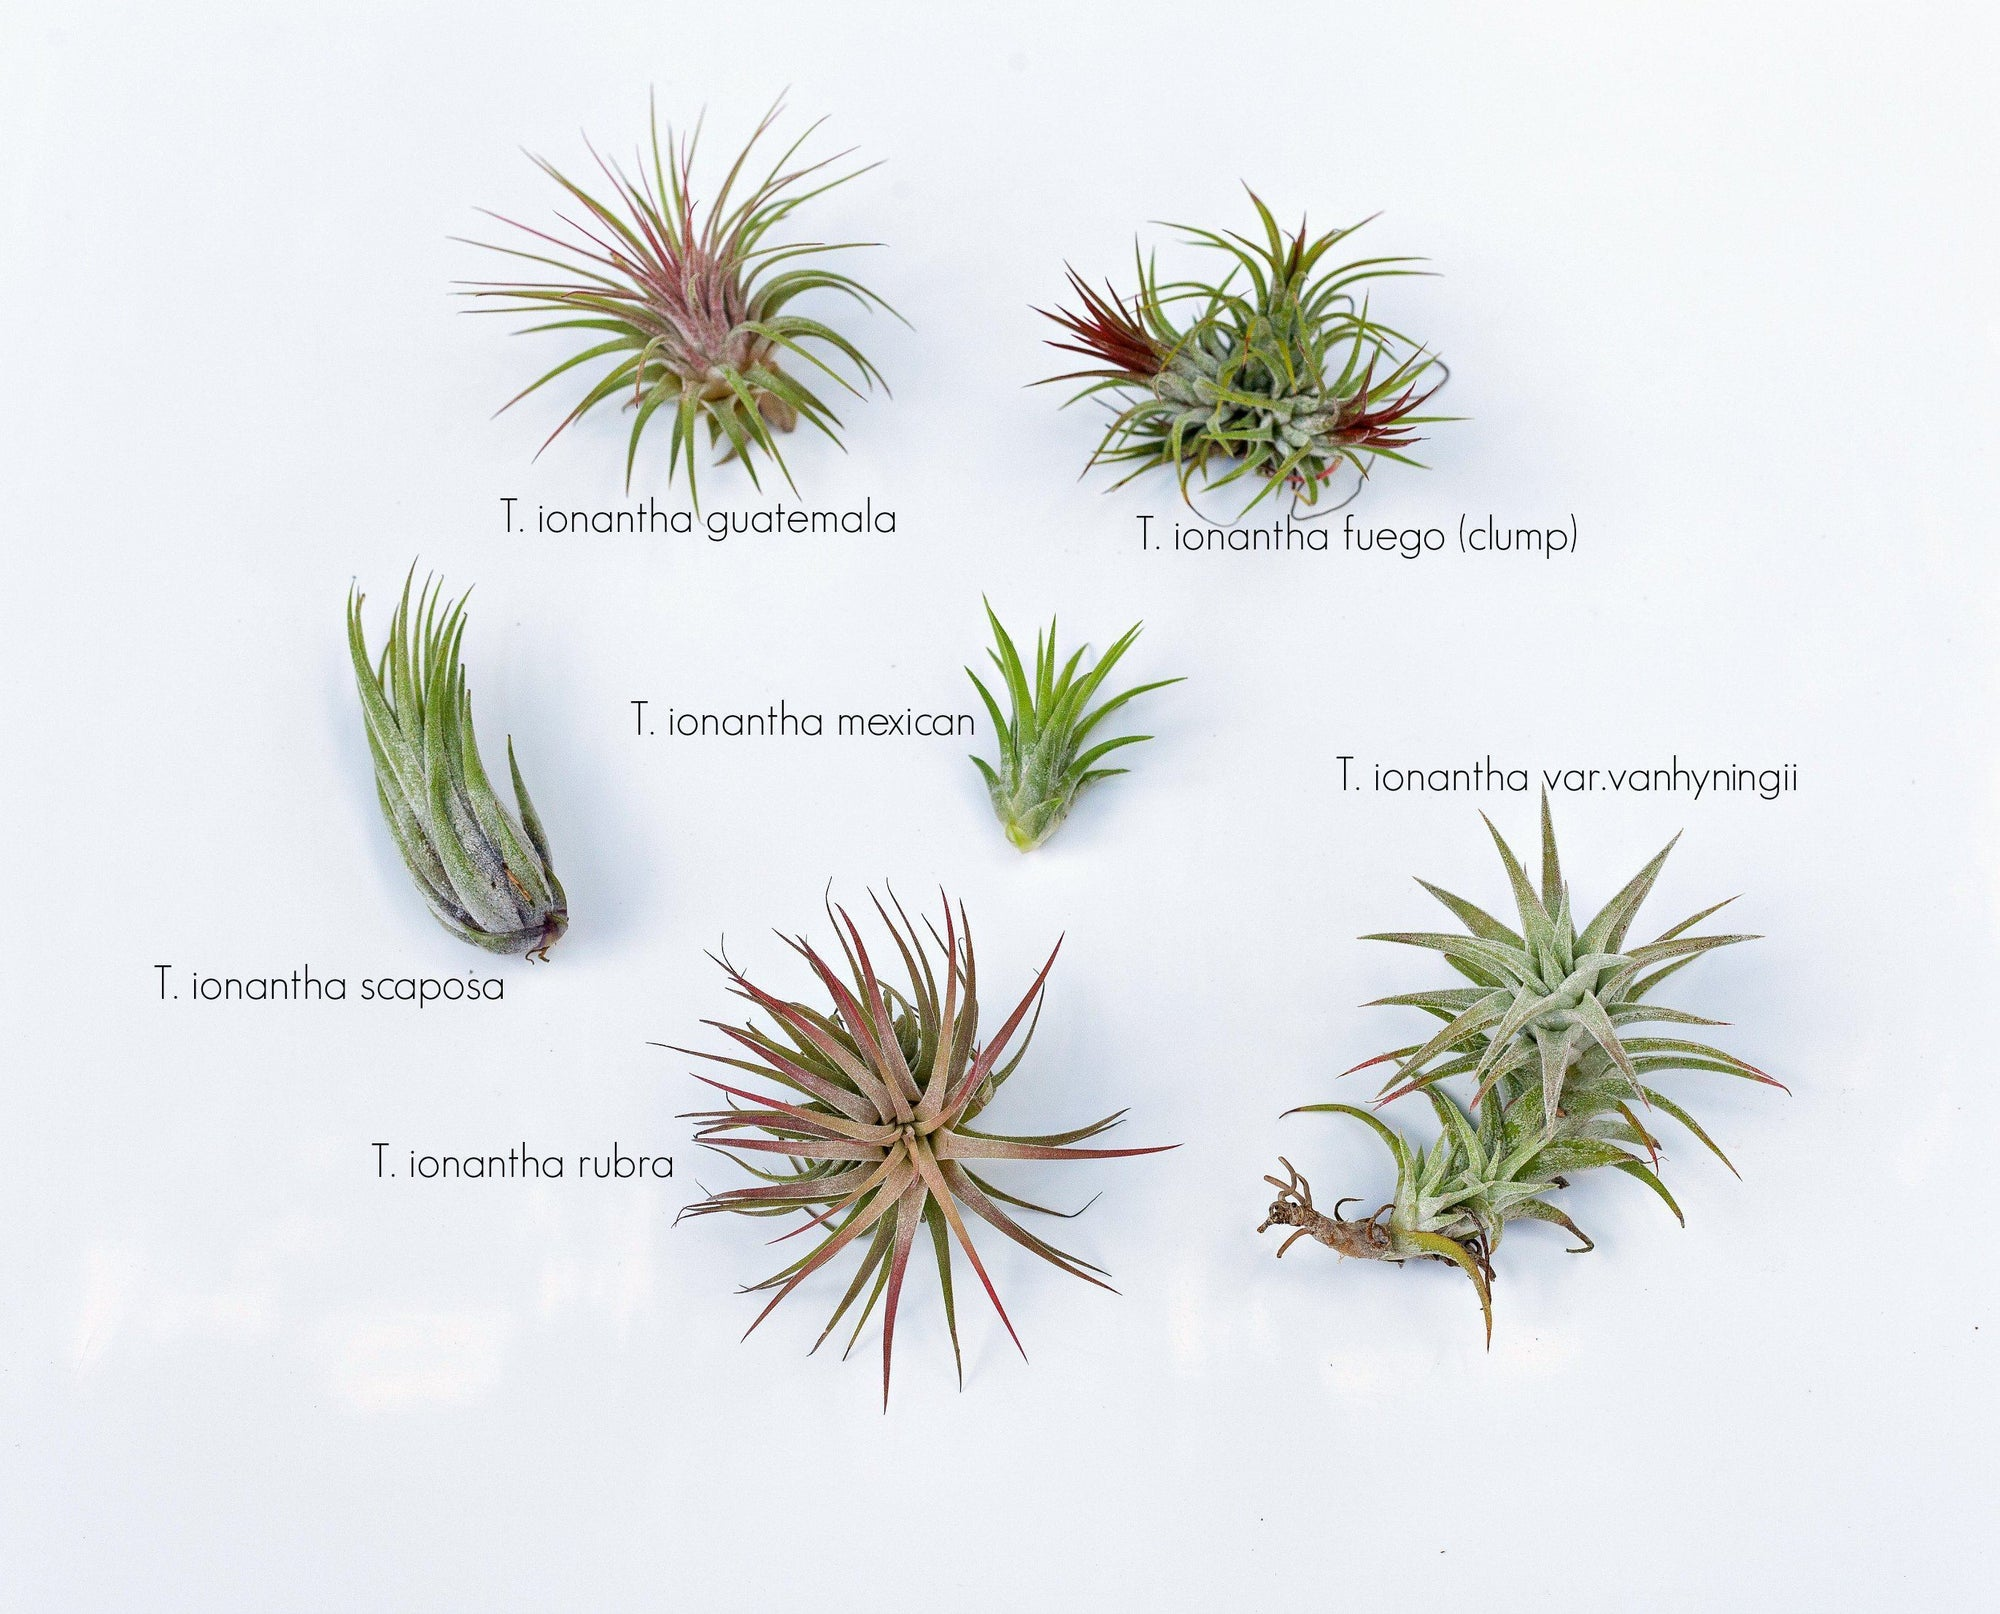 Common Tillandsia Ionantha Forms